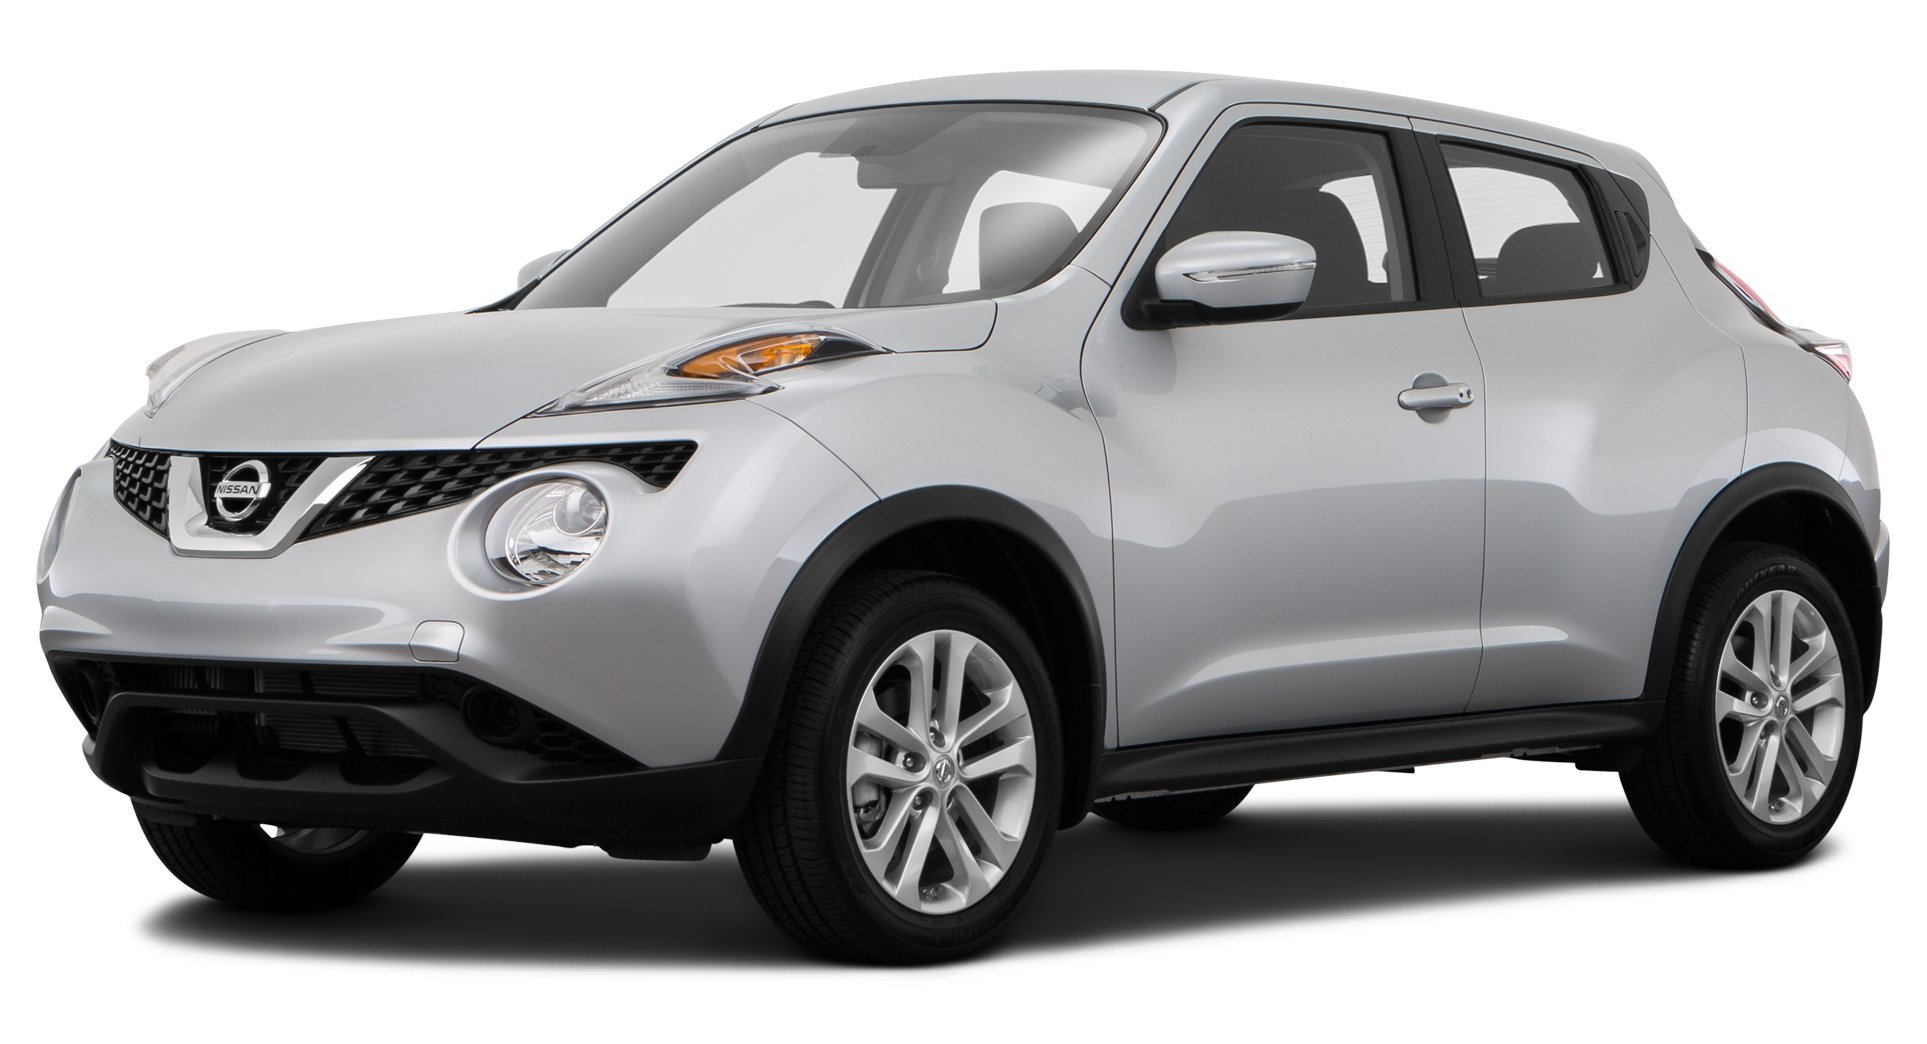 2017 nissan juke reviews images and specs. Black Bedroom Furniture Sets. Home Design Ideas